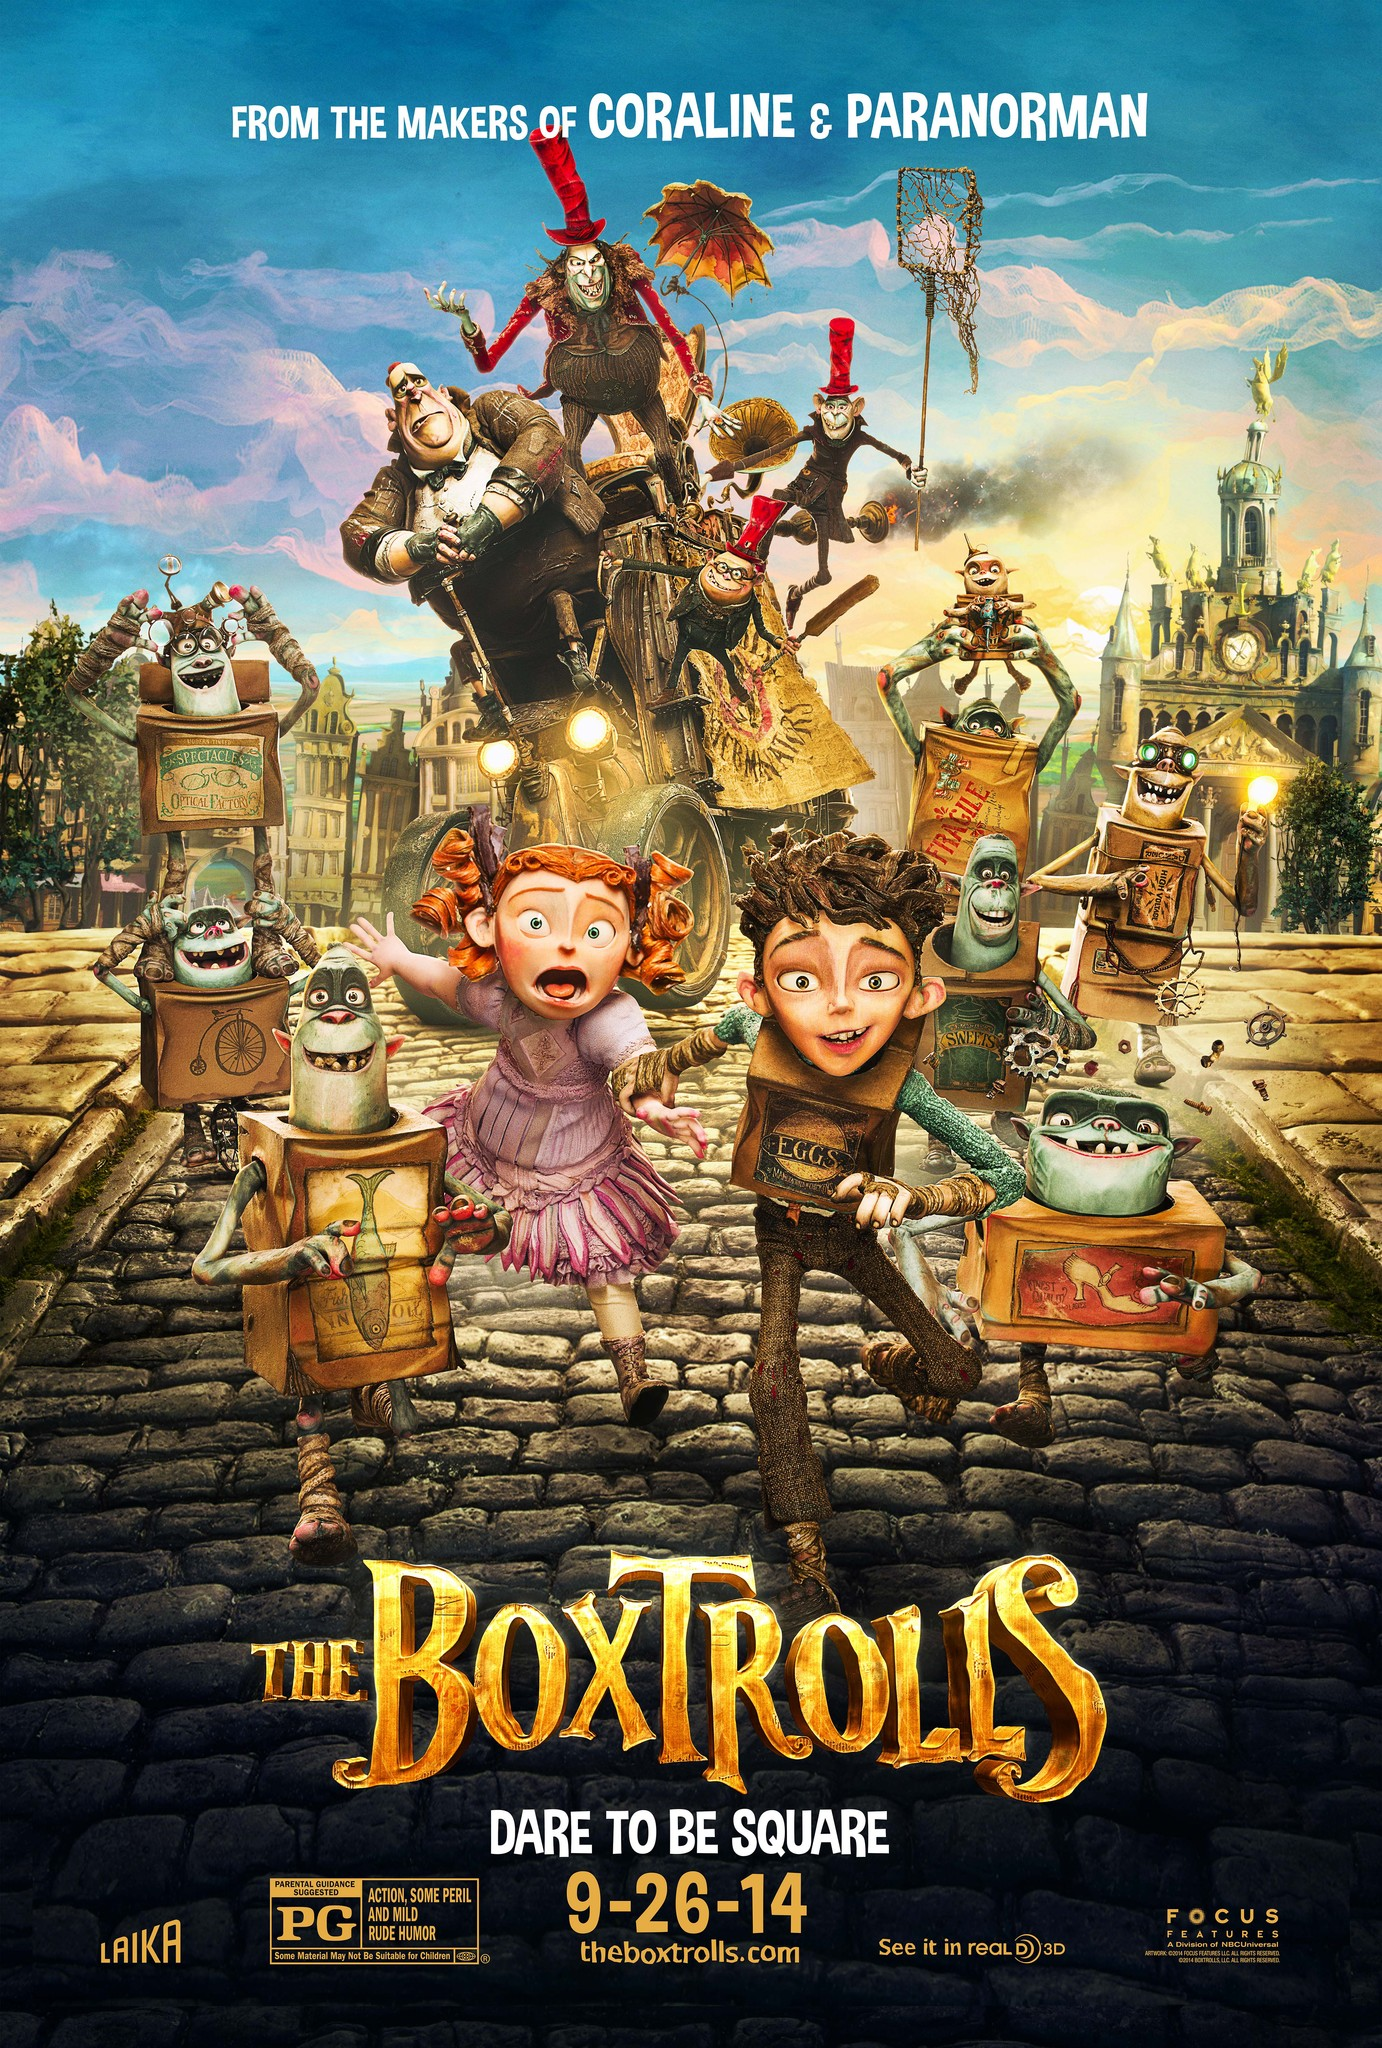 the boxtrolls full movie download in hindi 480p